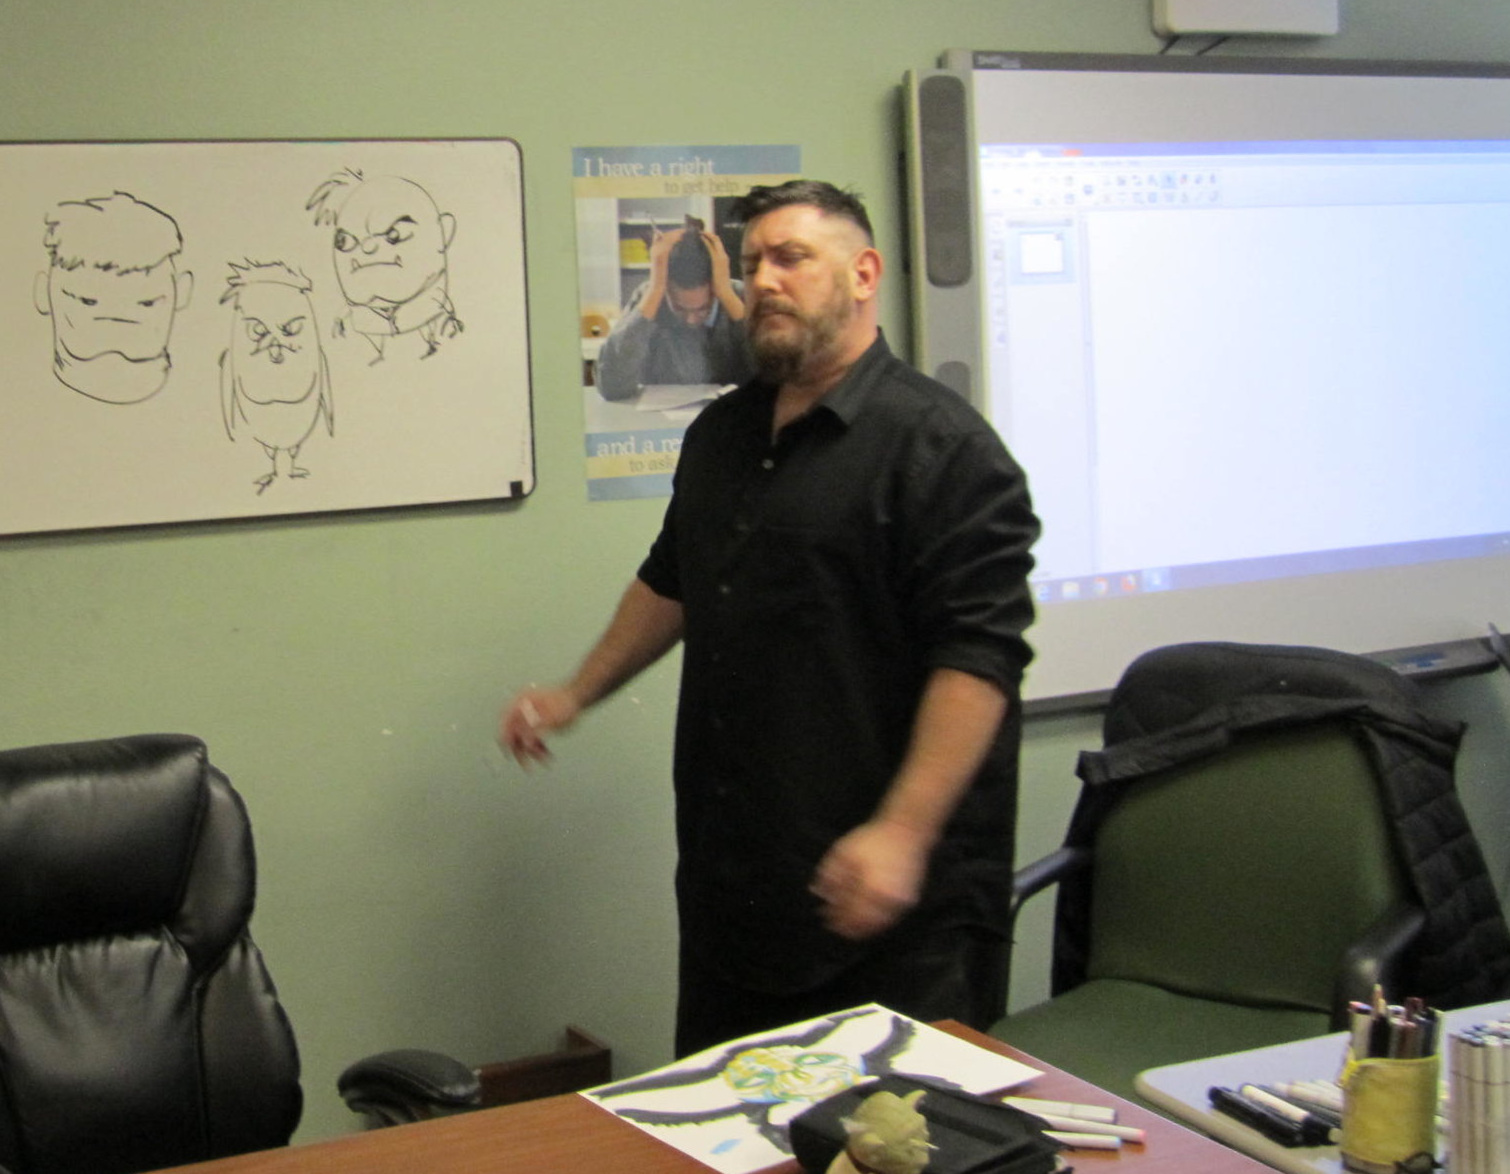 Matt illustrates some of his facial drawing techniques on the white board at Center Point School.